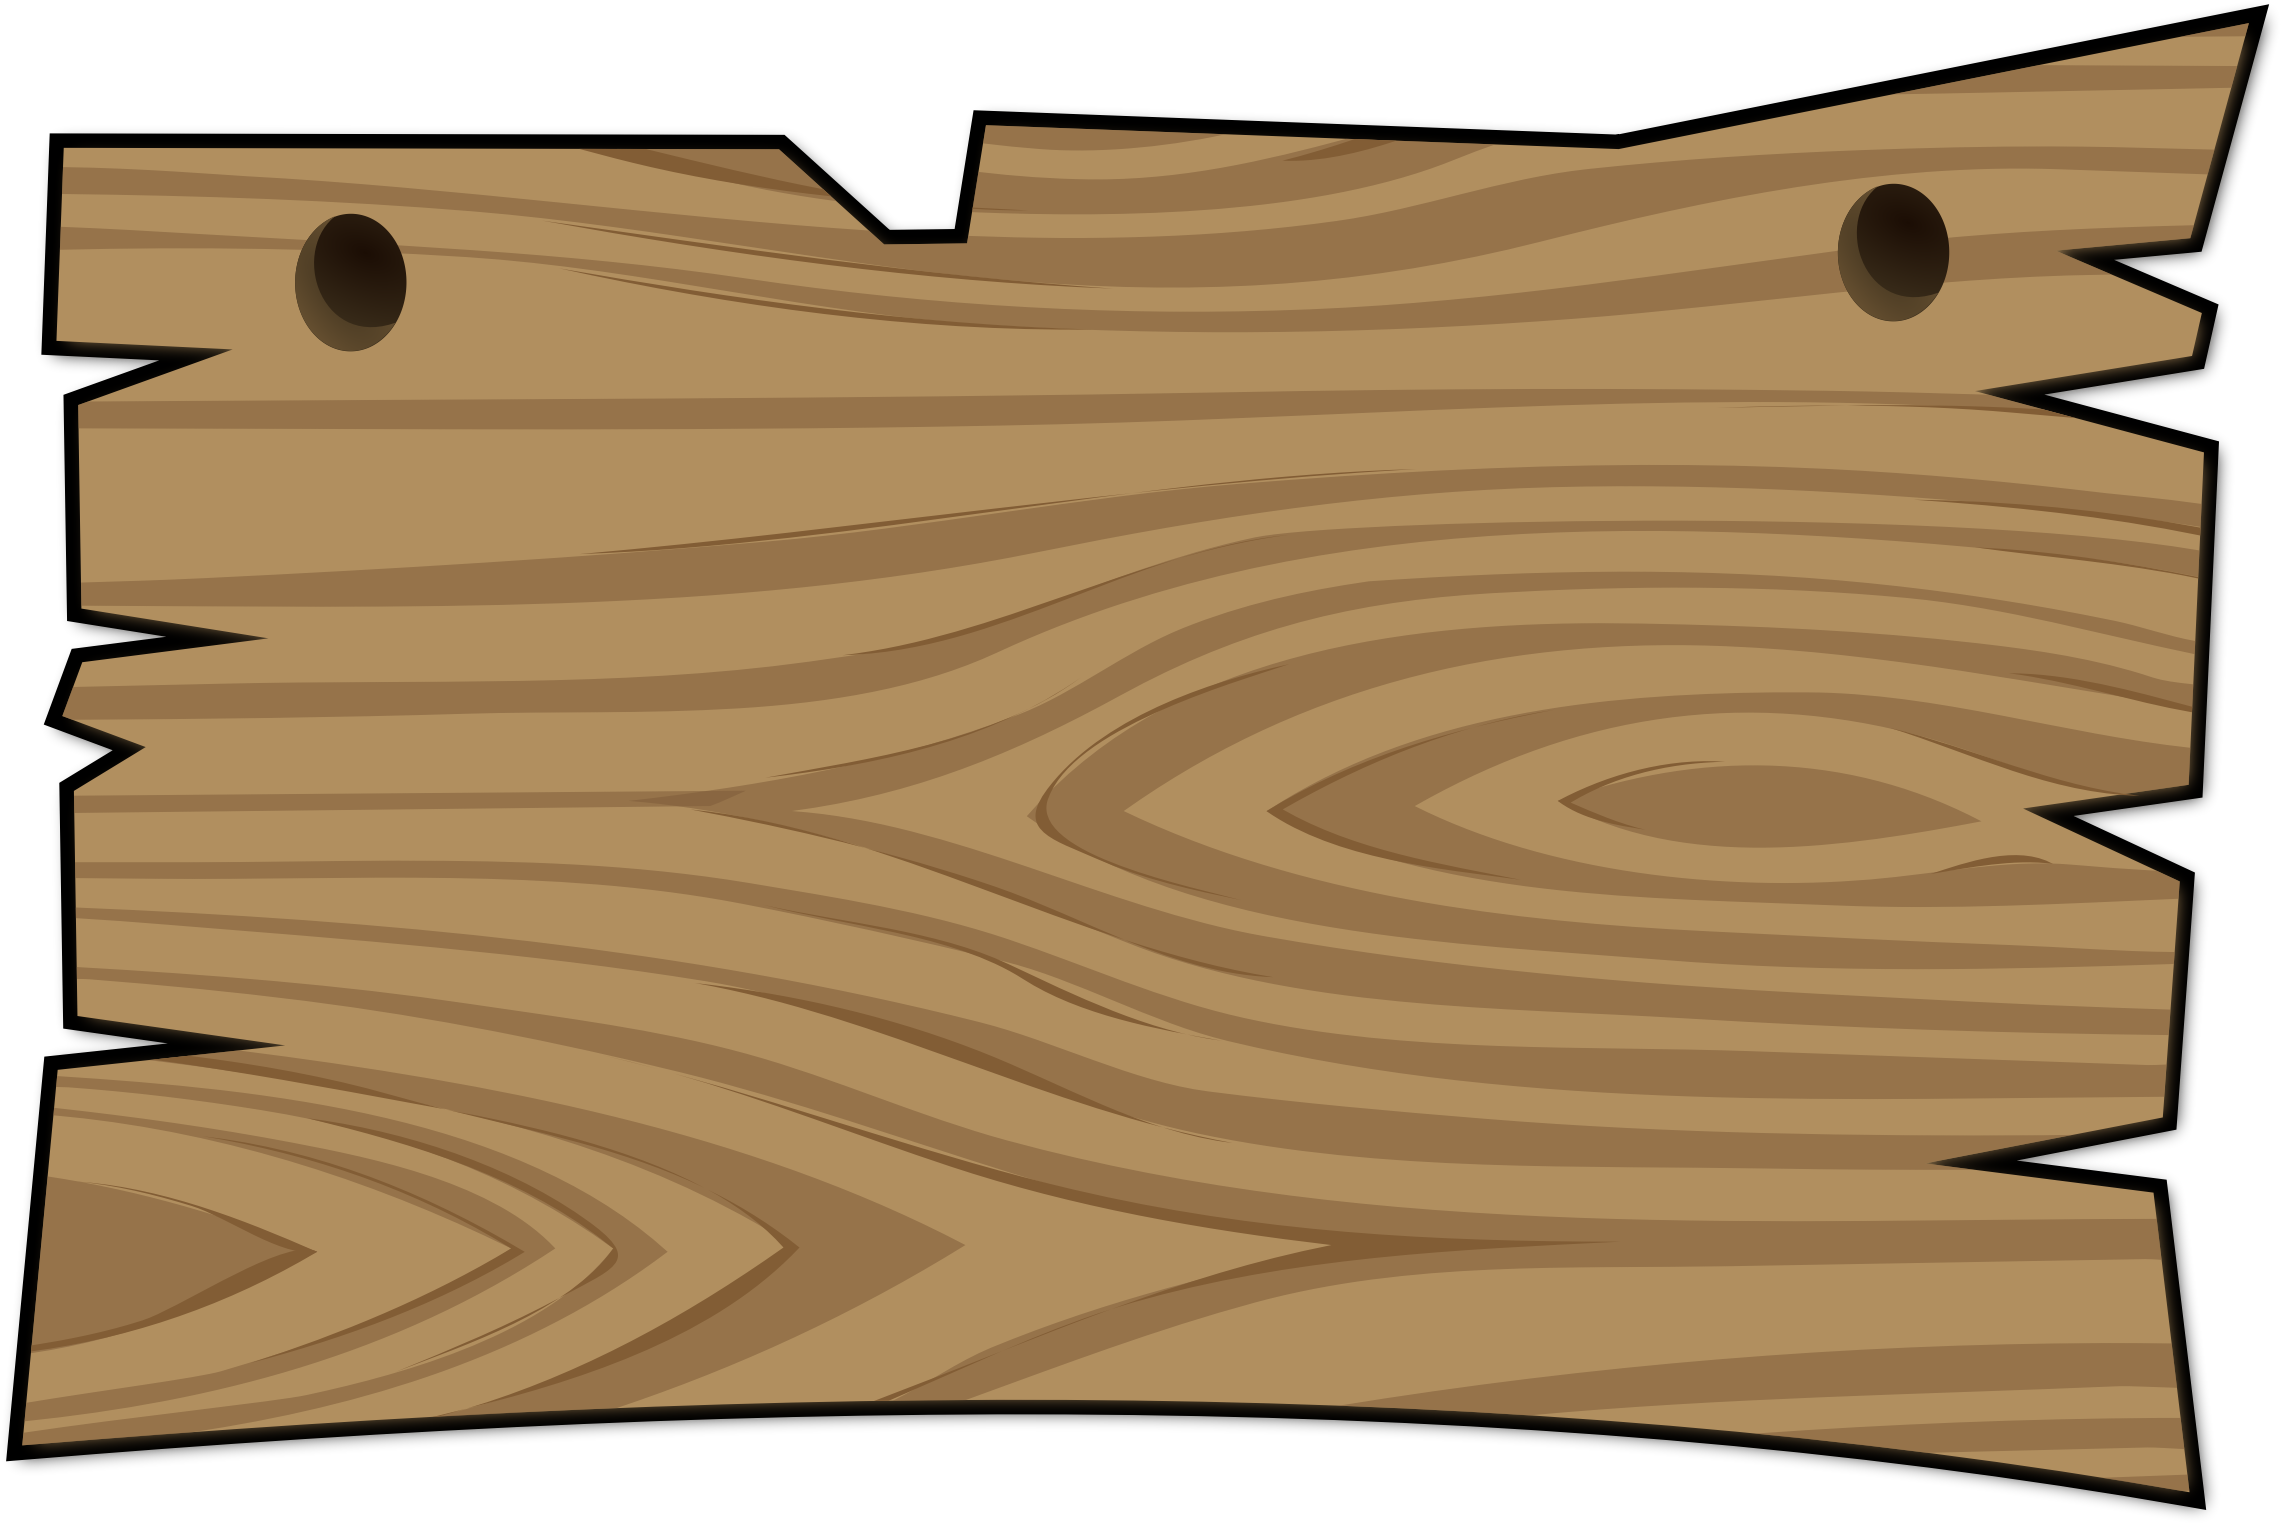 Plaque clipart. Wood